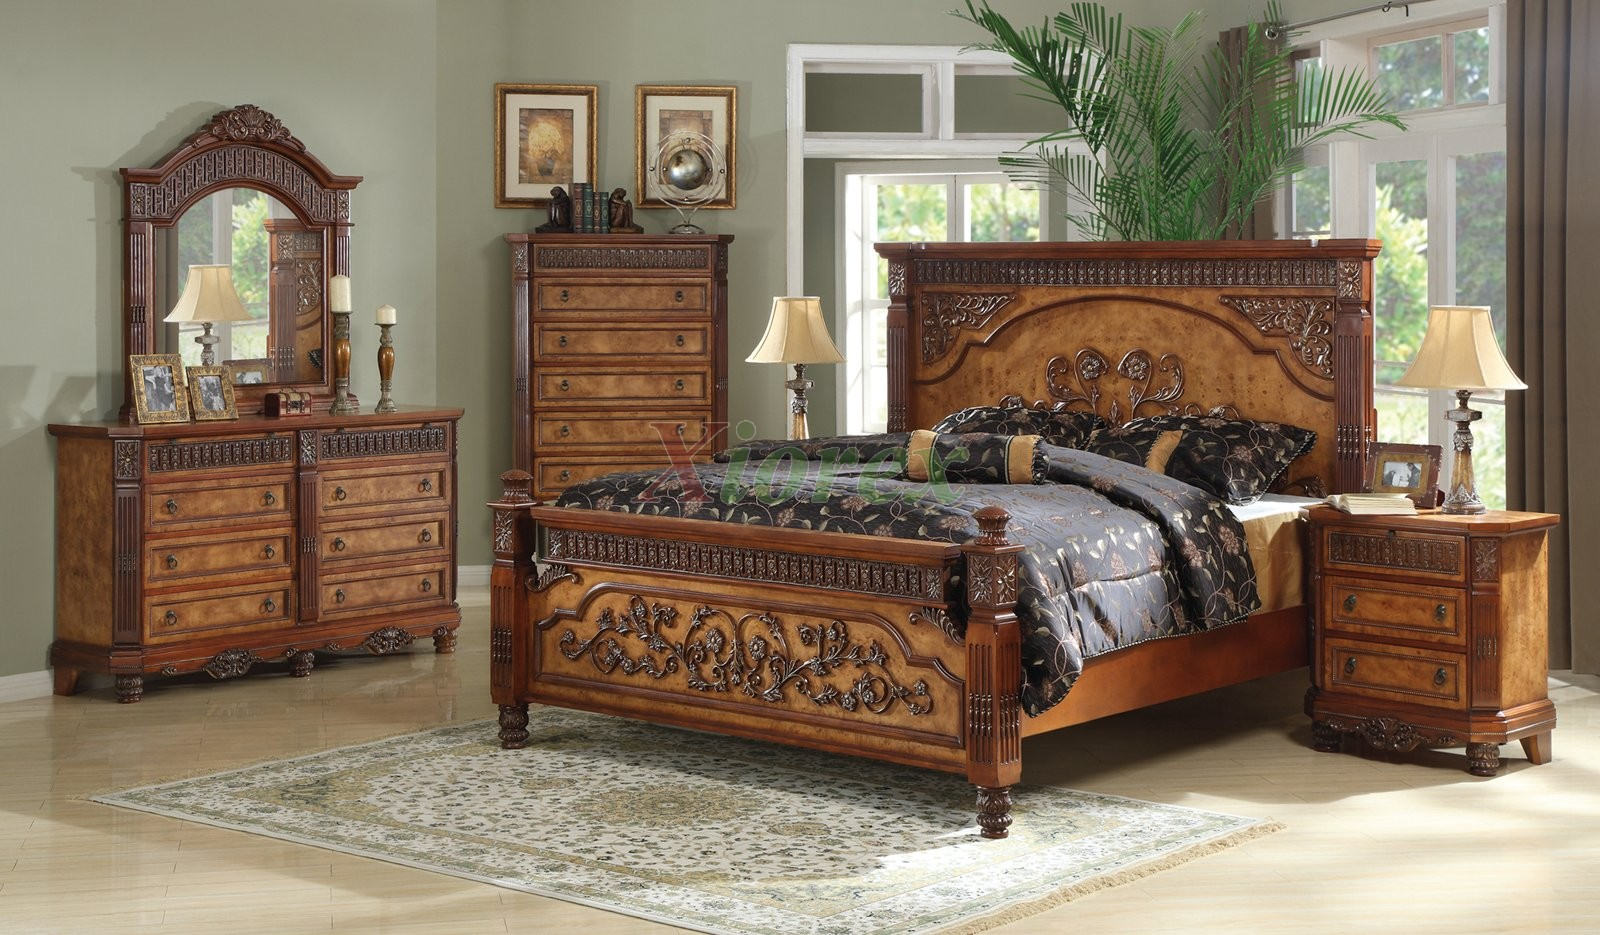 poster bedroom furniture set 125 xiorex. Black Bedroom Furniture Sets. Home Design Ideas